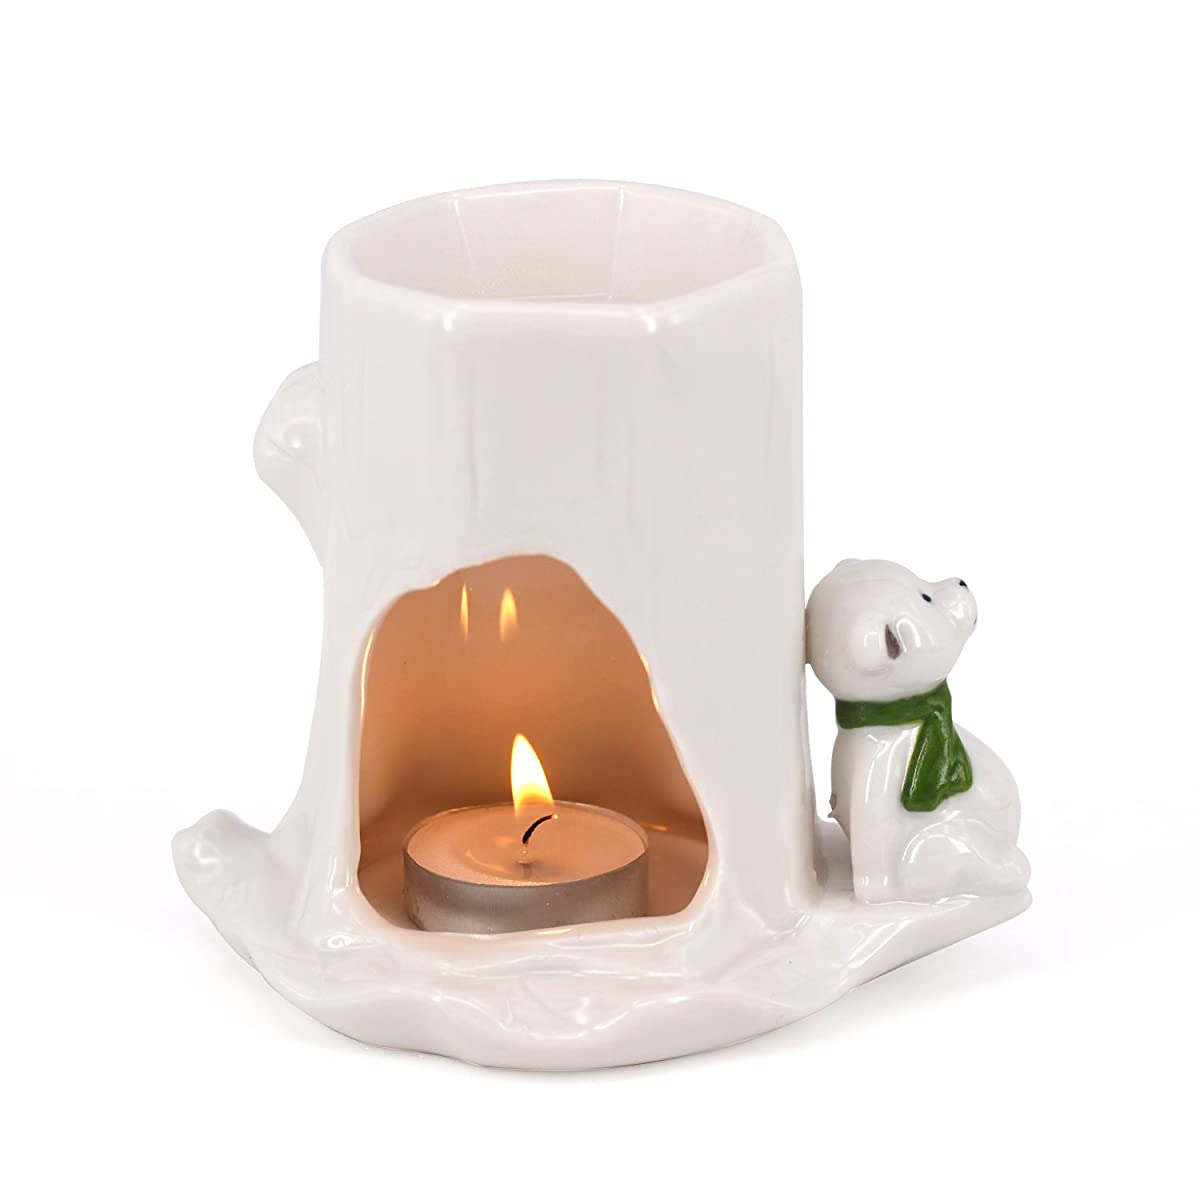 DELIWAY Animal Design Ceramic Tea Light Holder/Wax Melt Warmer, Handcrafted Essential Oil Warmer Aromatherapy Burner, Great Decoration for Living Room, Balcony, Spa, Yoga Meditation (Little Bear)